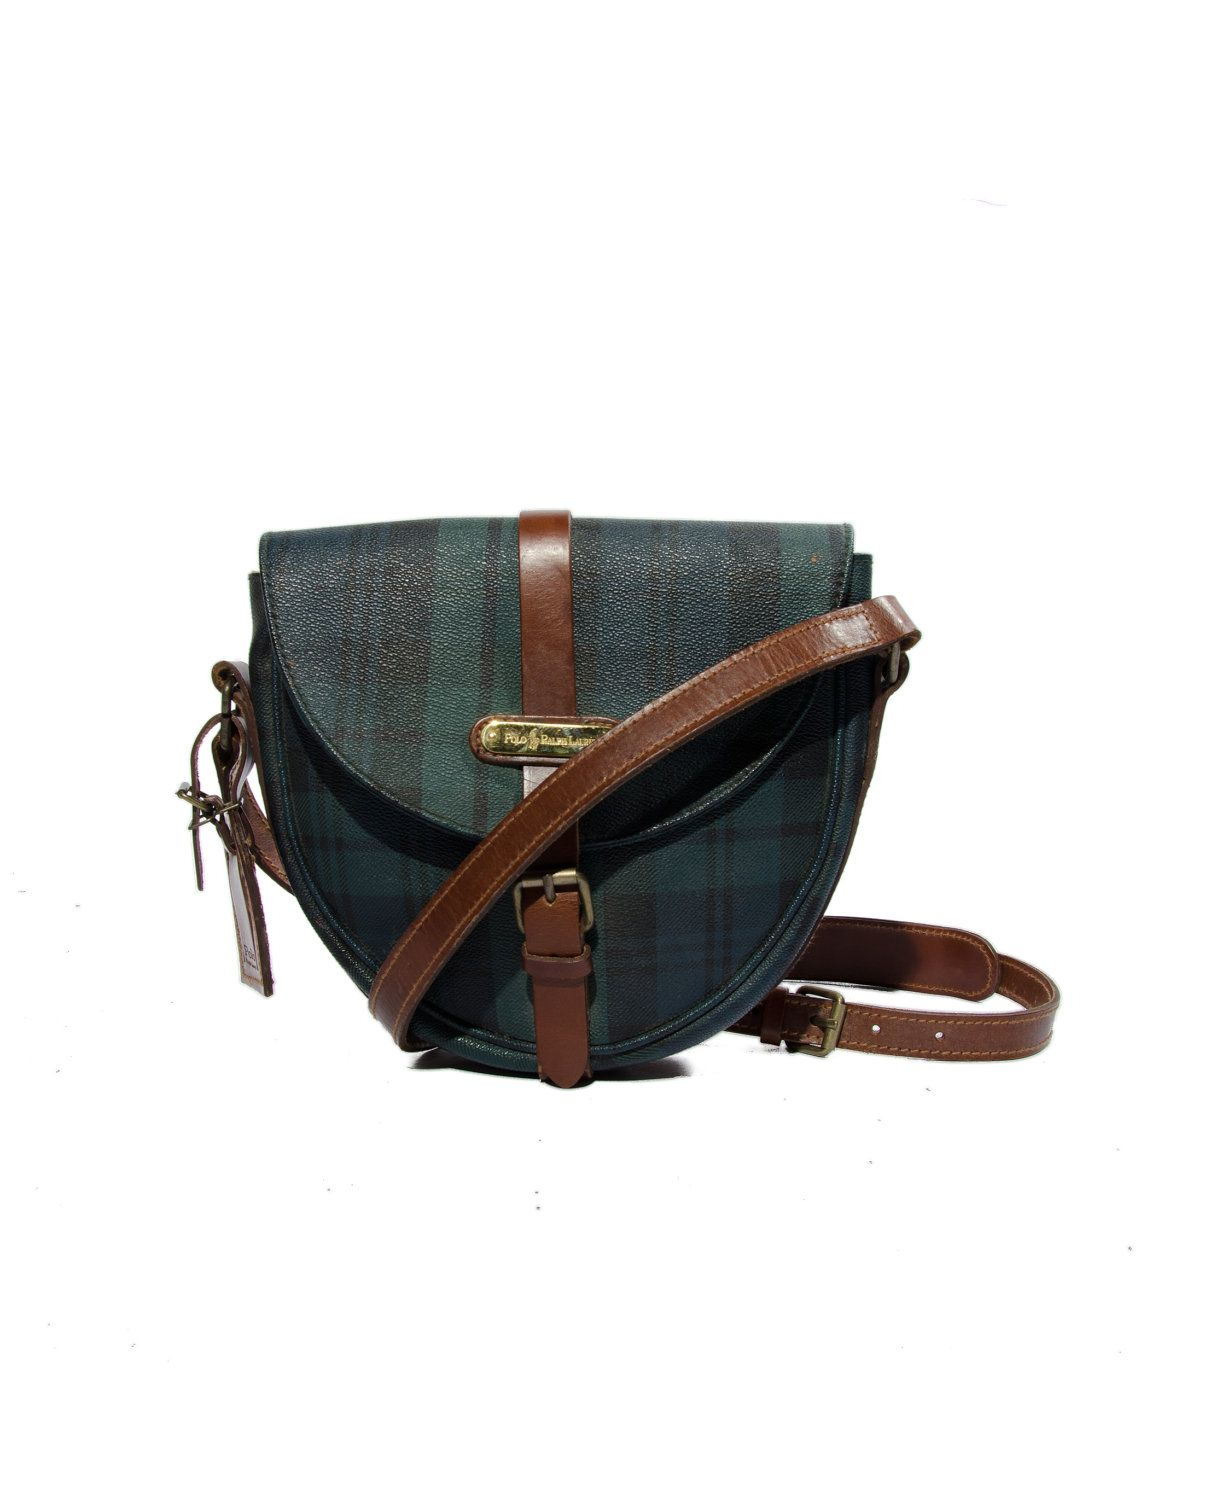 80 s Vintage Ralph Lauren Blackwatch Plaid Saddle Bag Purse with Brown  Leather Trim Women s Handbag.  85.00 91687c3687cad